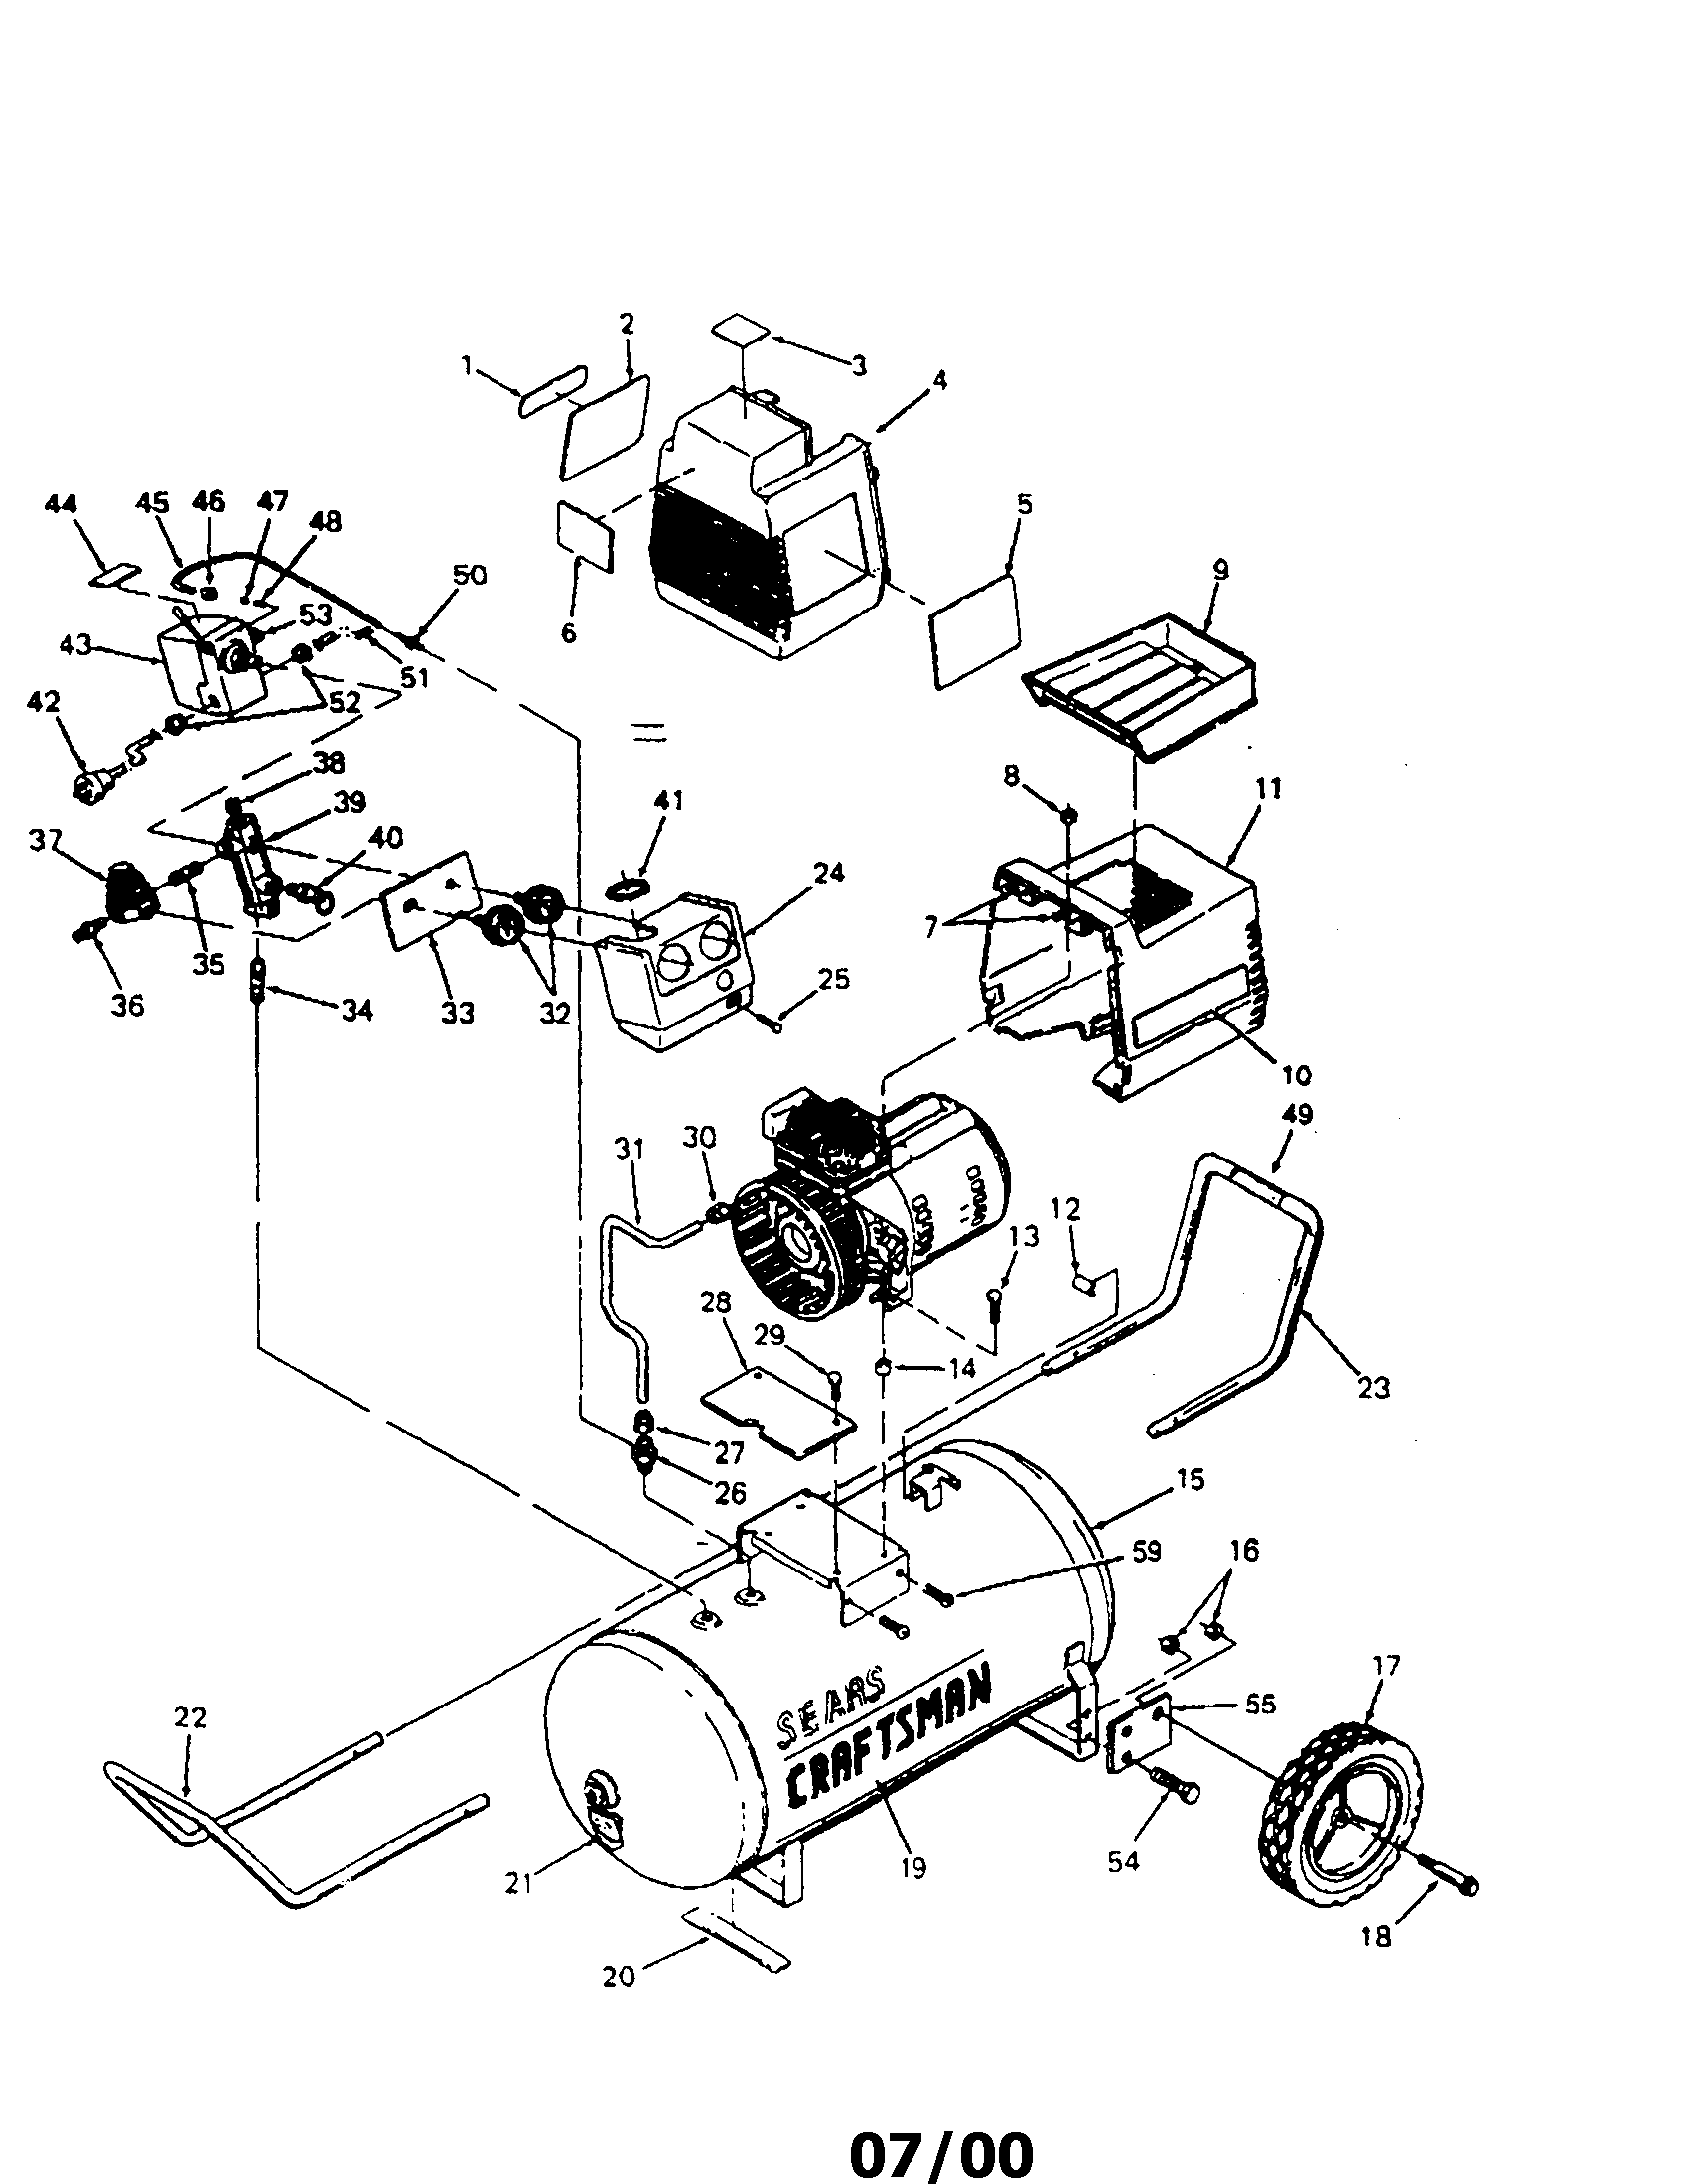 919.153231_craftsman_compressor_parts 919 153231 sears craftsman air compressor parts abac air compressor wiring diagram at sewacar.co